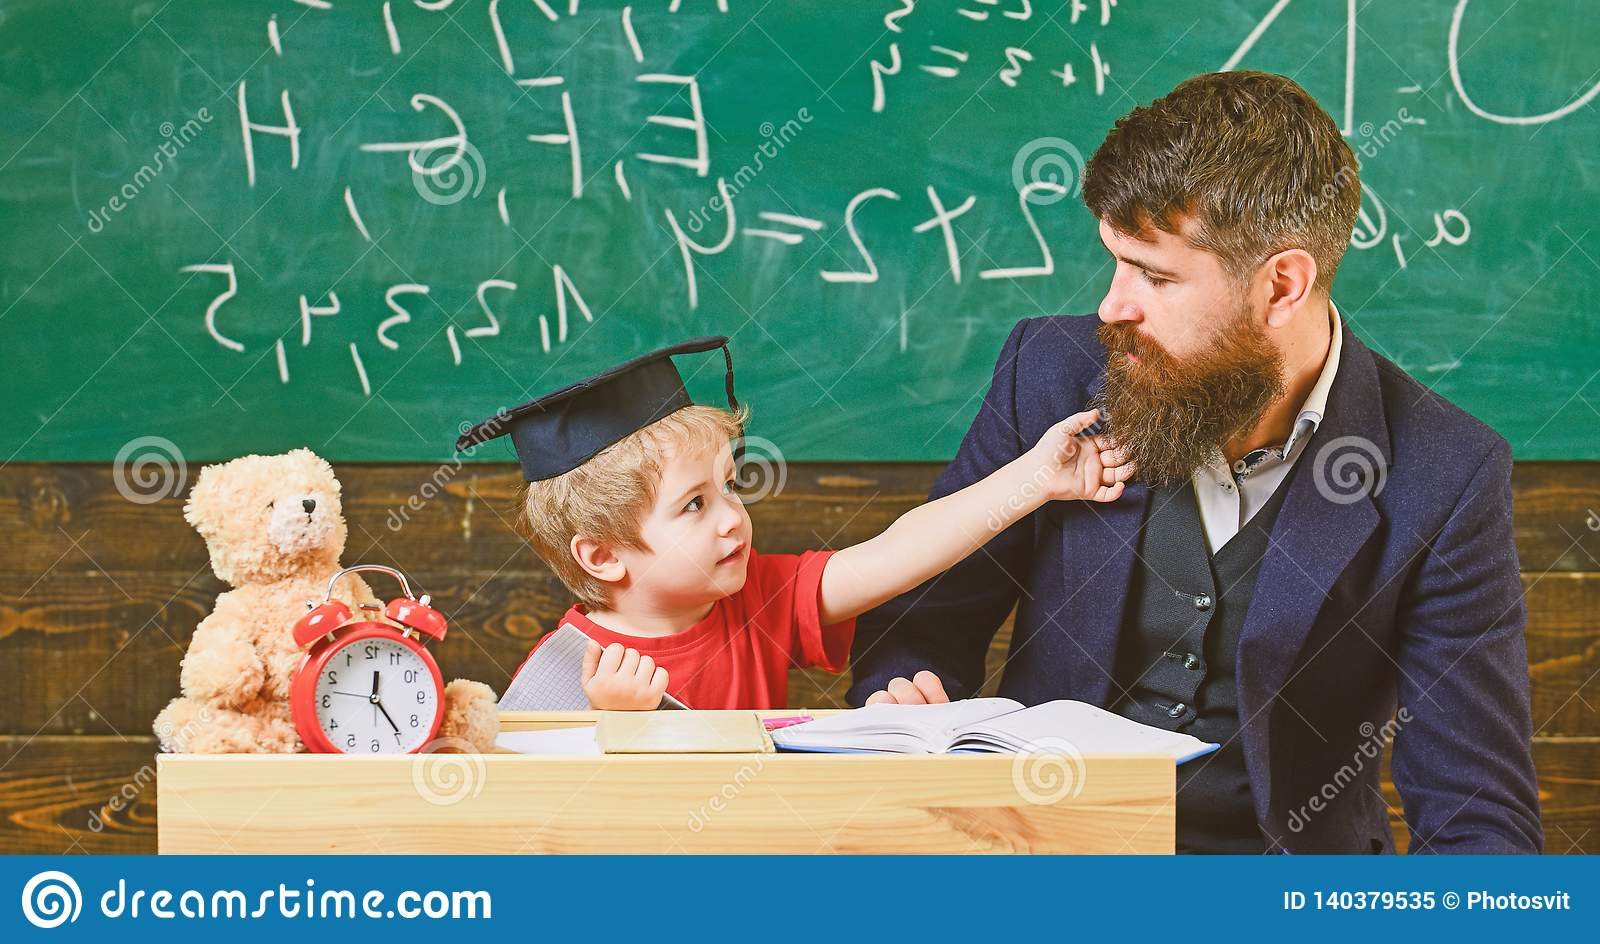 Teacher and pupil in mortarboard, chalkboard on background. Kid cheerful distracting while studying, attention deficit